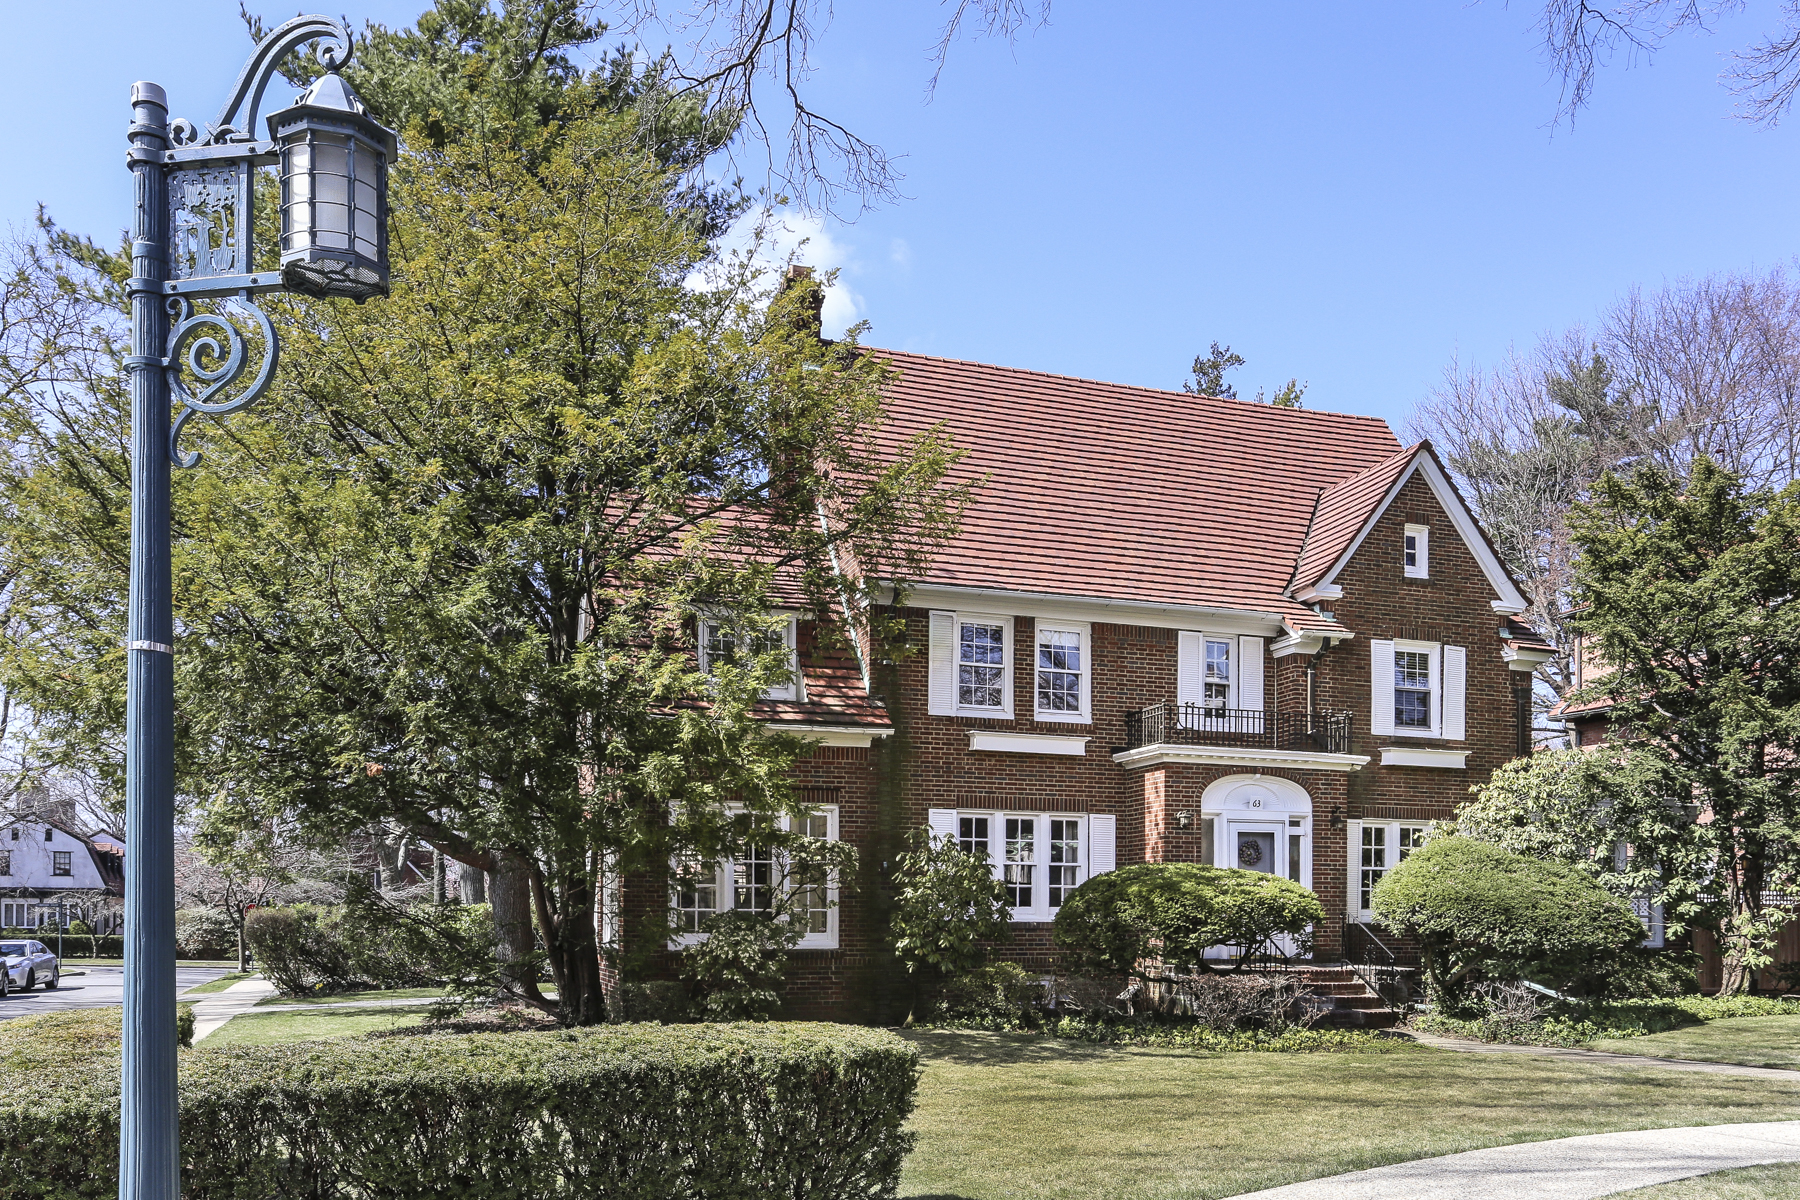 """Single Family Home for Sale at """"PICTURE PERFECT CENTER HALL COLONIAL"""" 63 Wendover Road, Forest Hills Gardens, Forest Hills, New York 11375 United States"""